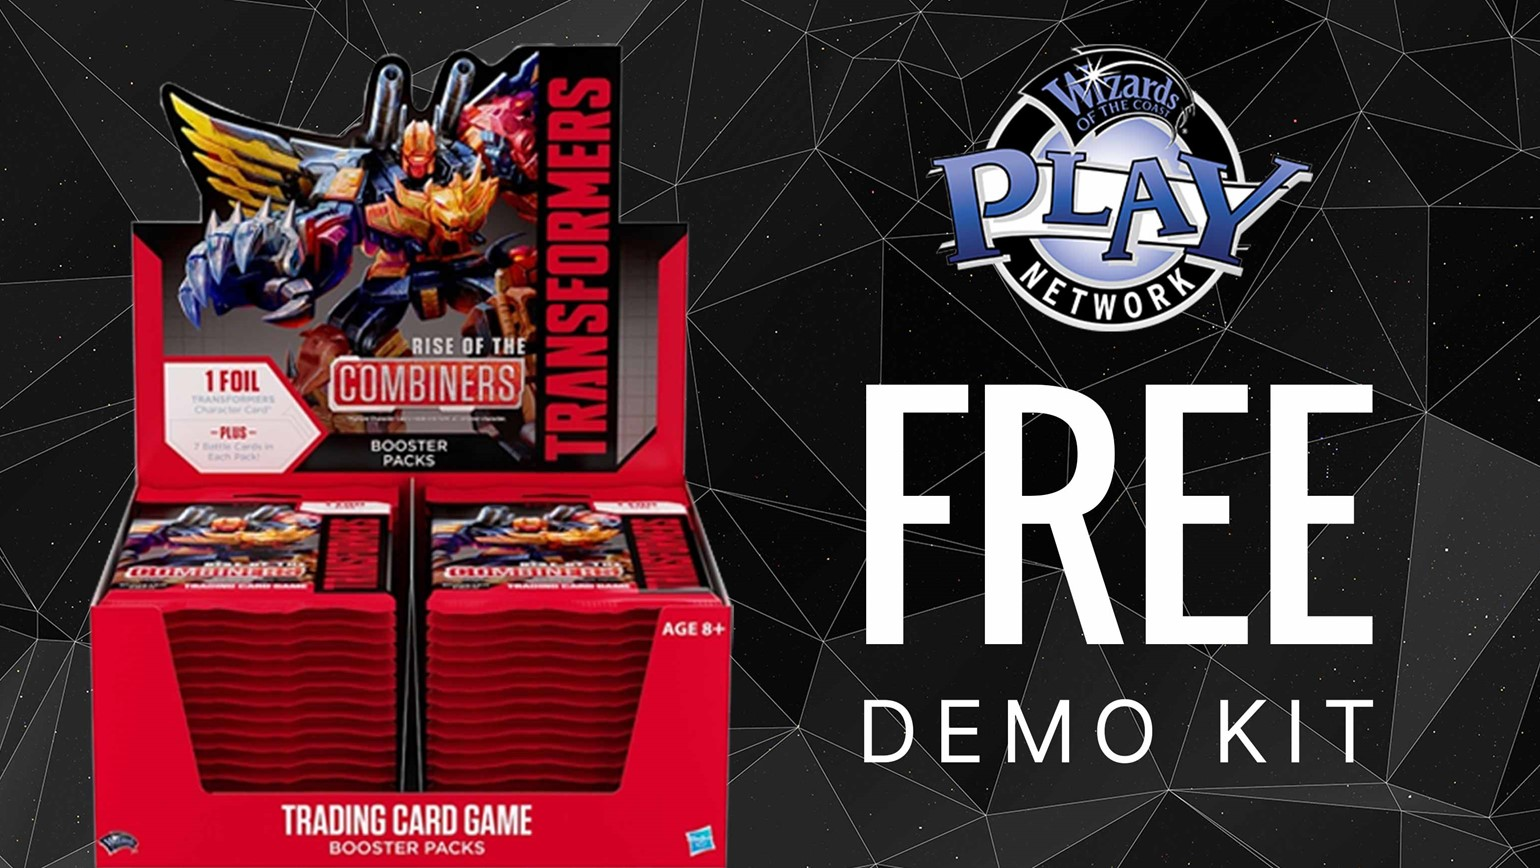 Free Transformers TCG Demo Kits Available Through the Wizards Play Network